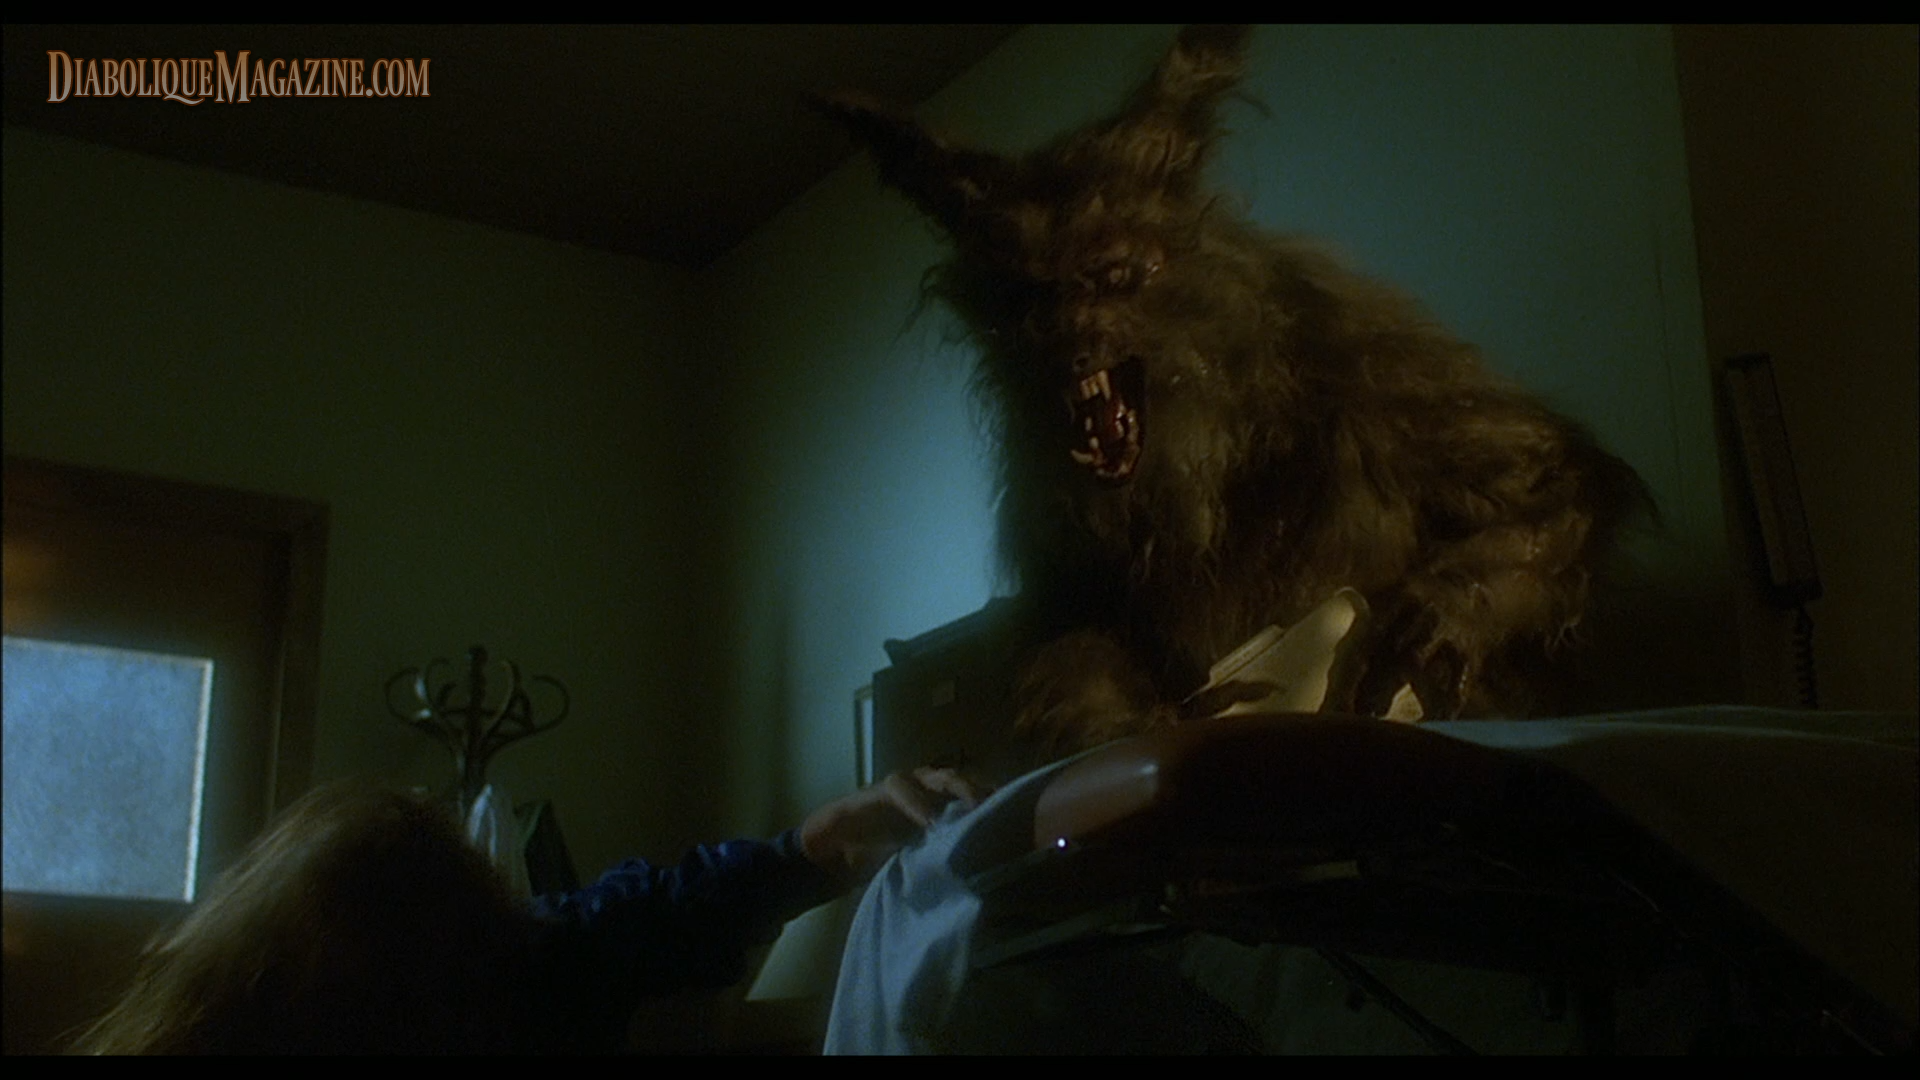 The Howling (Blu-Ray Review) - Diabolique Magazine